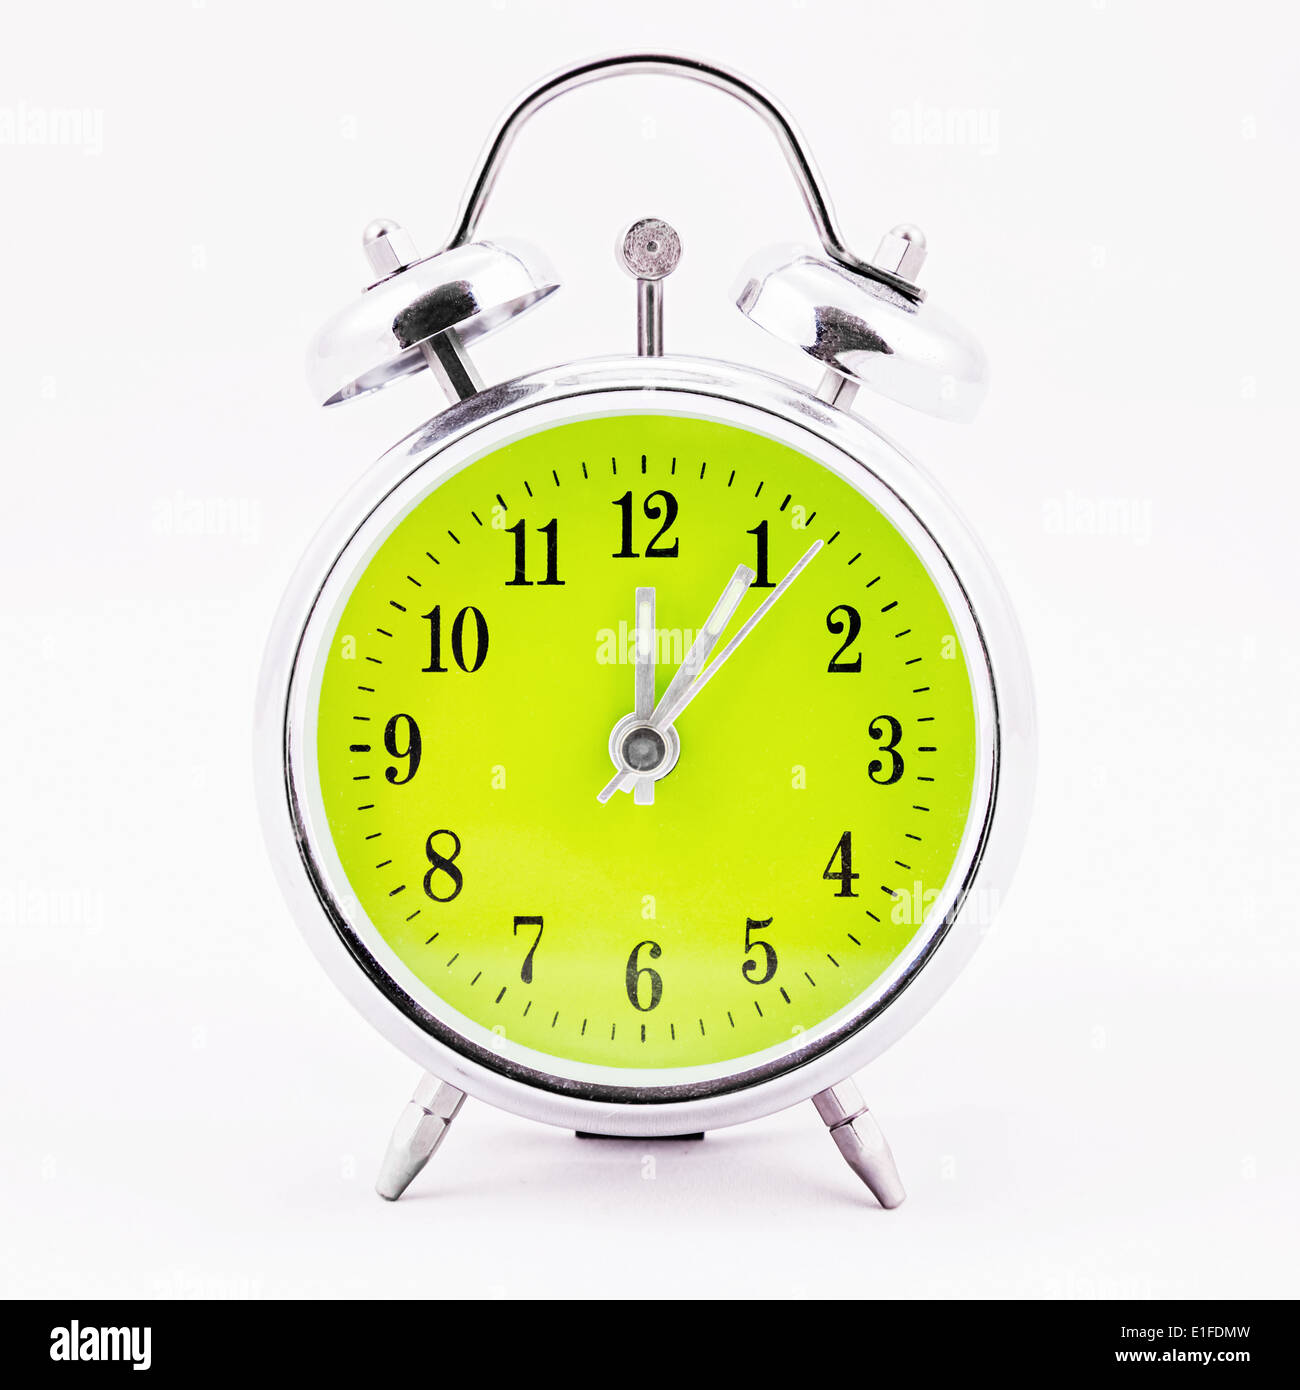 Alarm clock on white background. Showing time five minutes past twelve - Stock Image